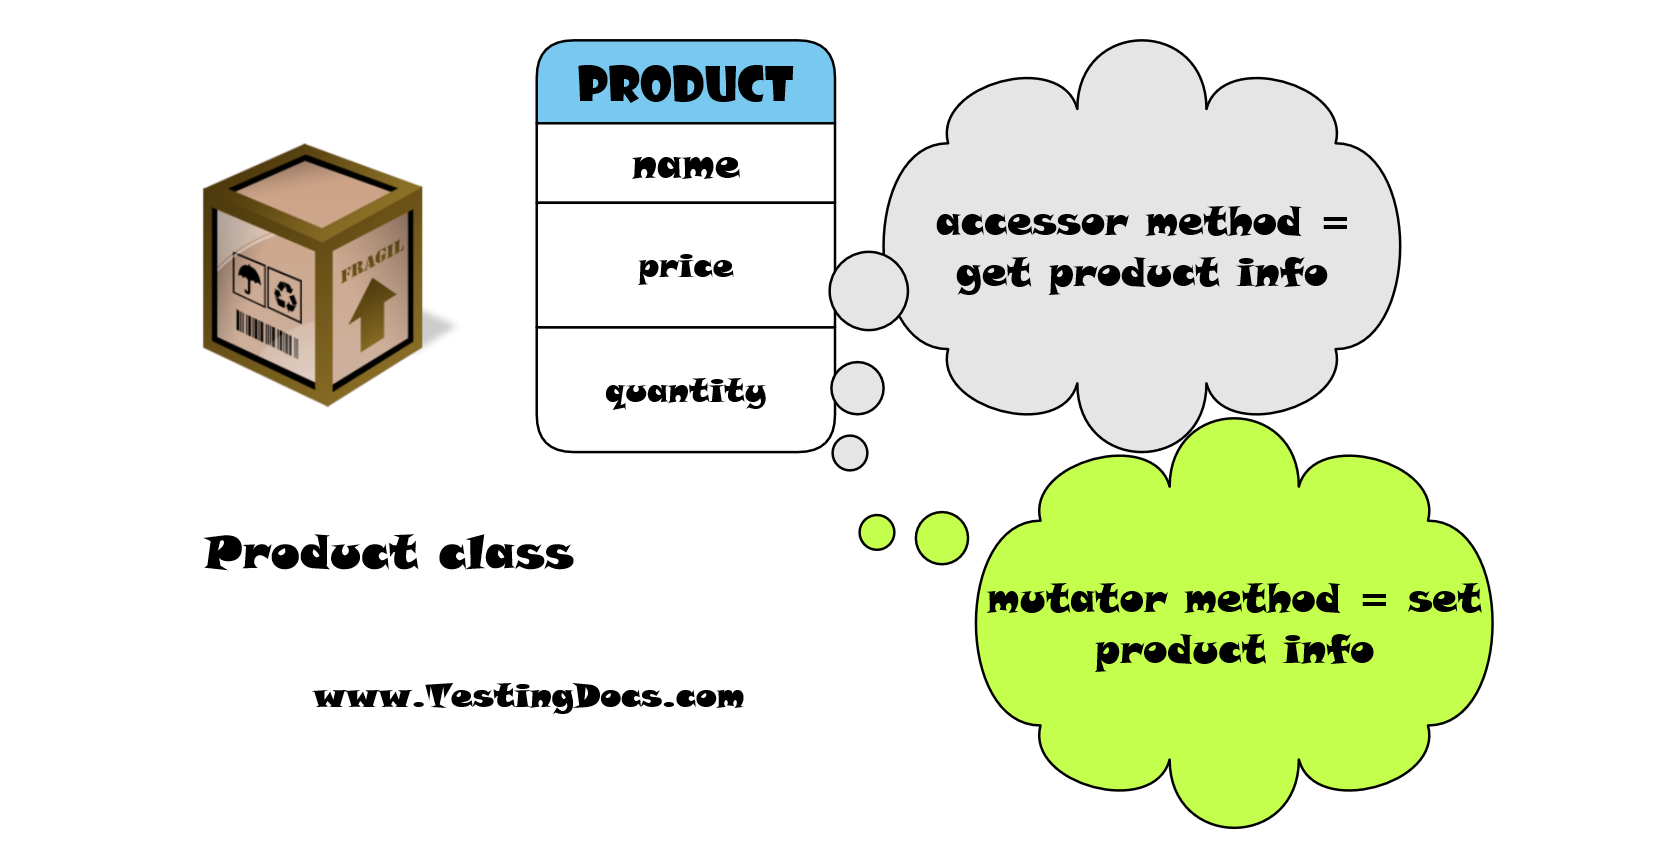 Product class